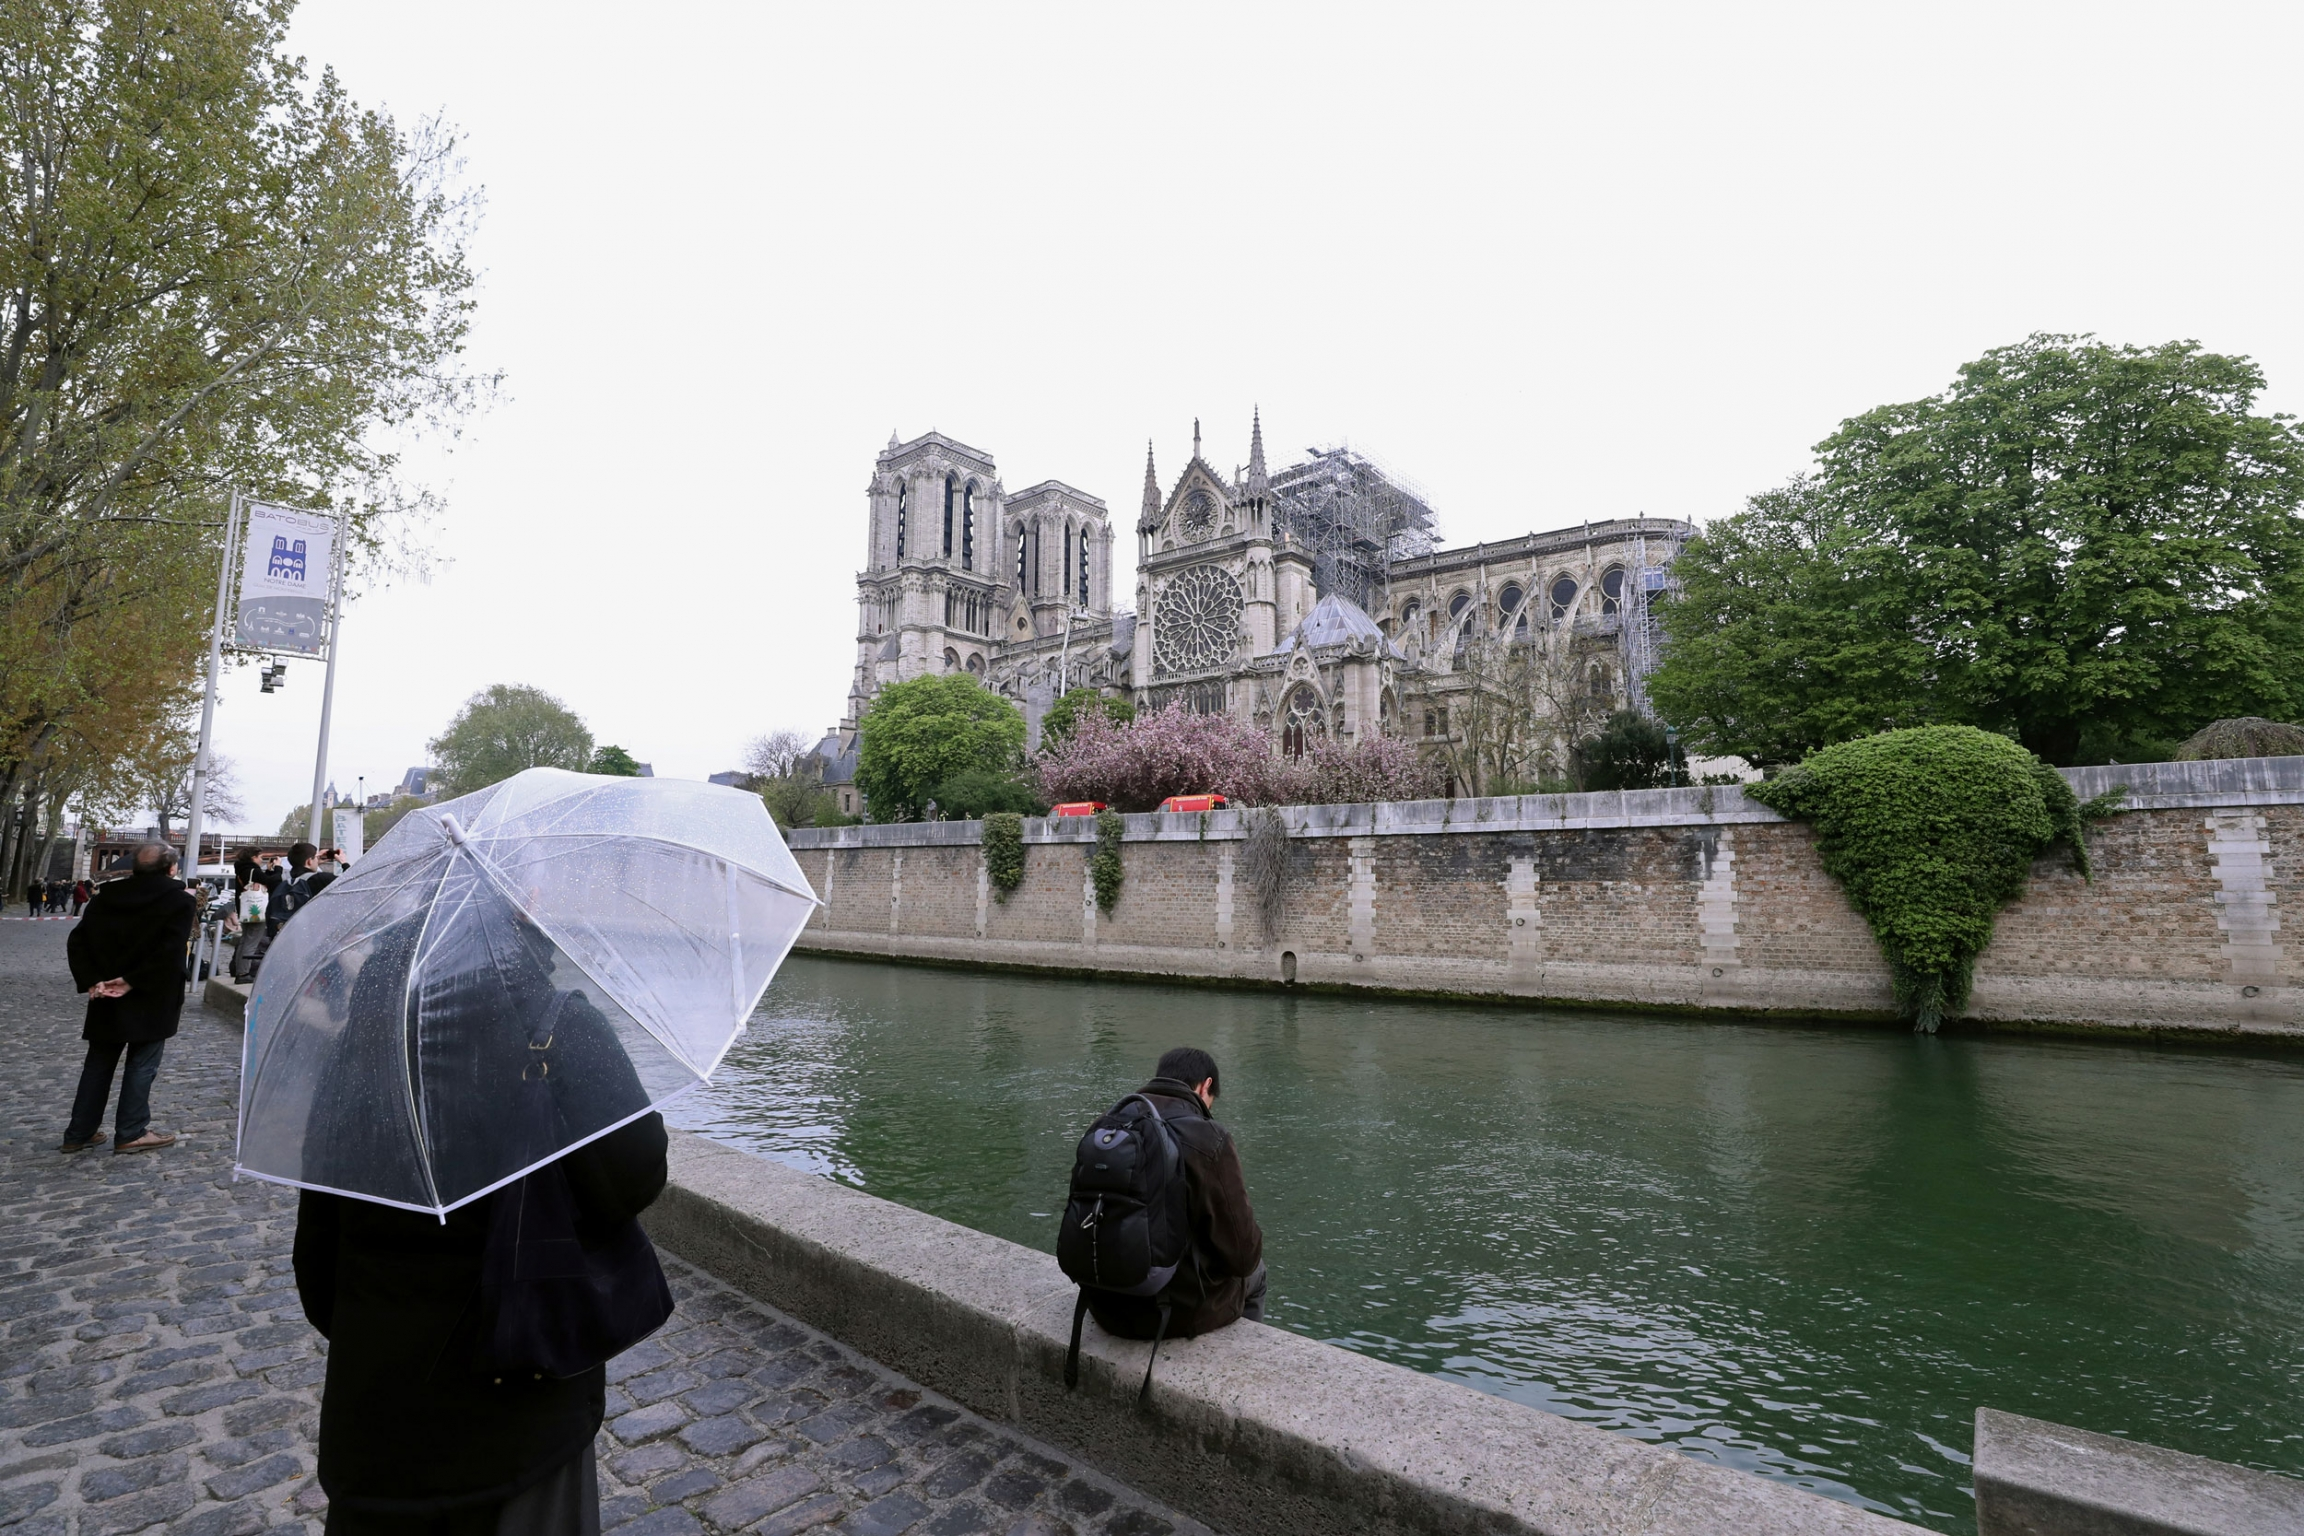 A person holding a clear umbrella stands across the river looking at a burned Notre-Dame Cathedral.